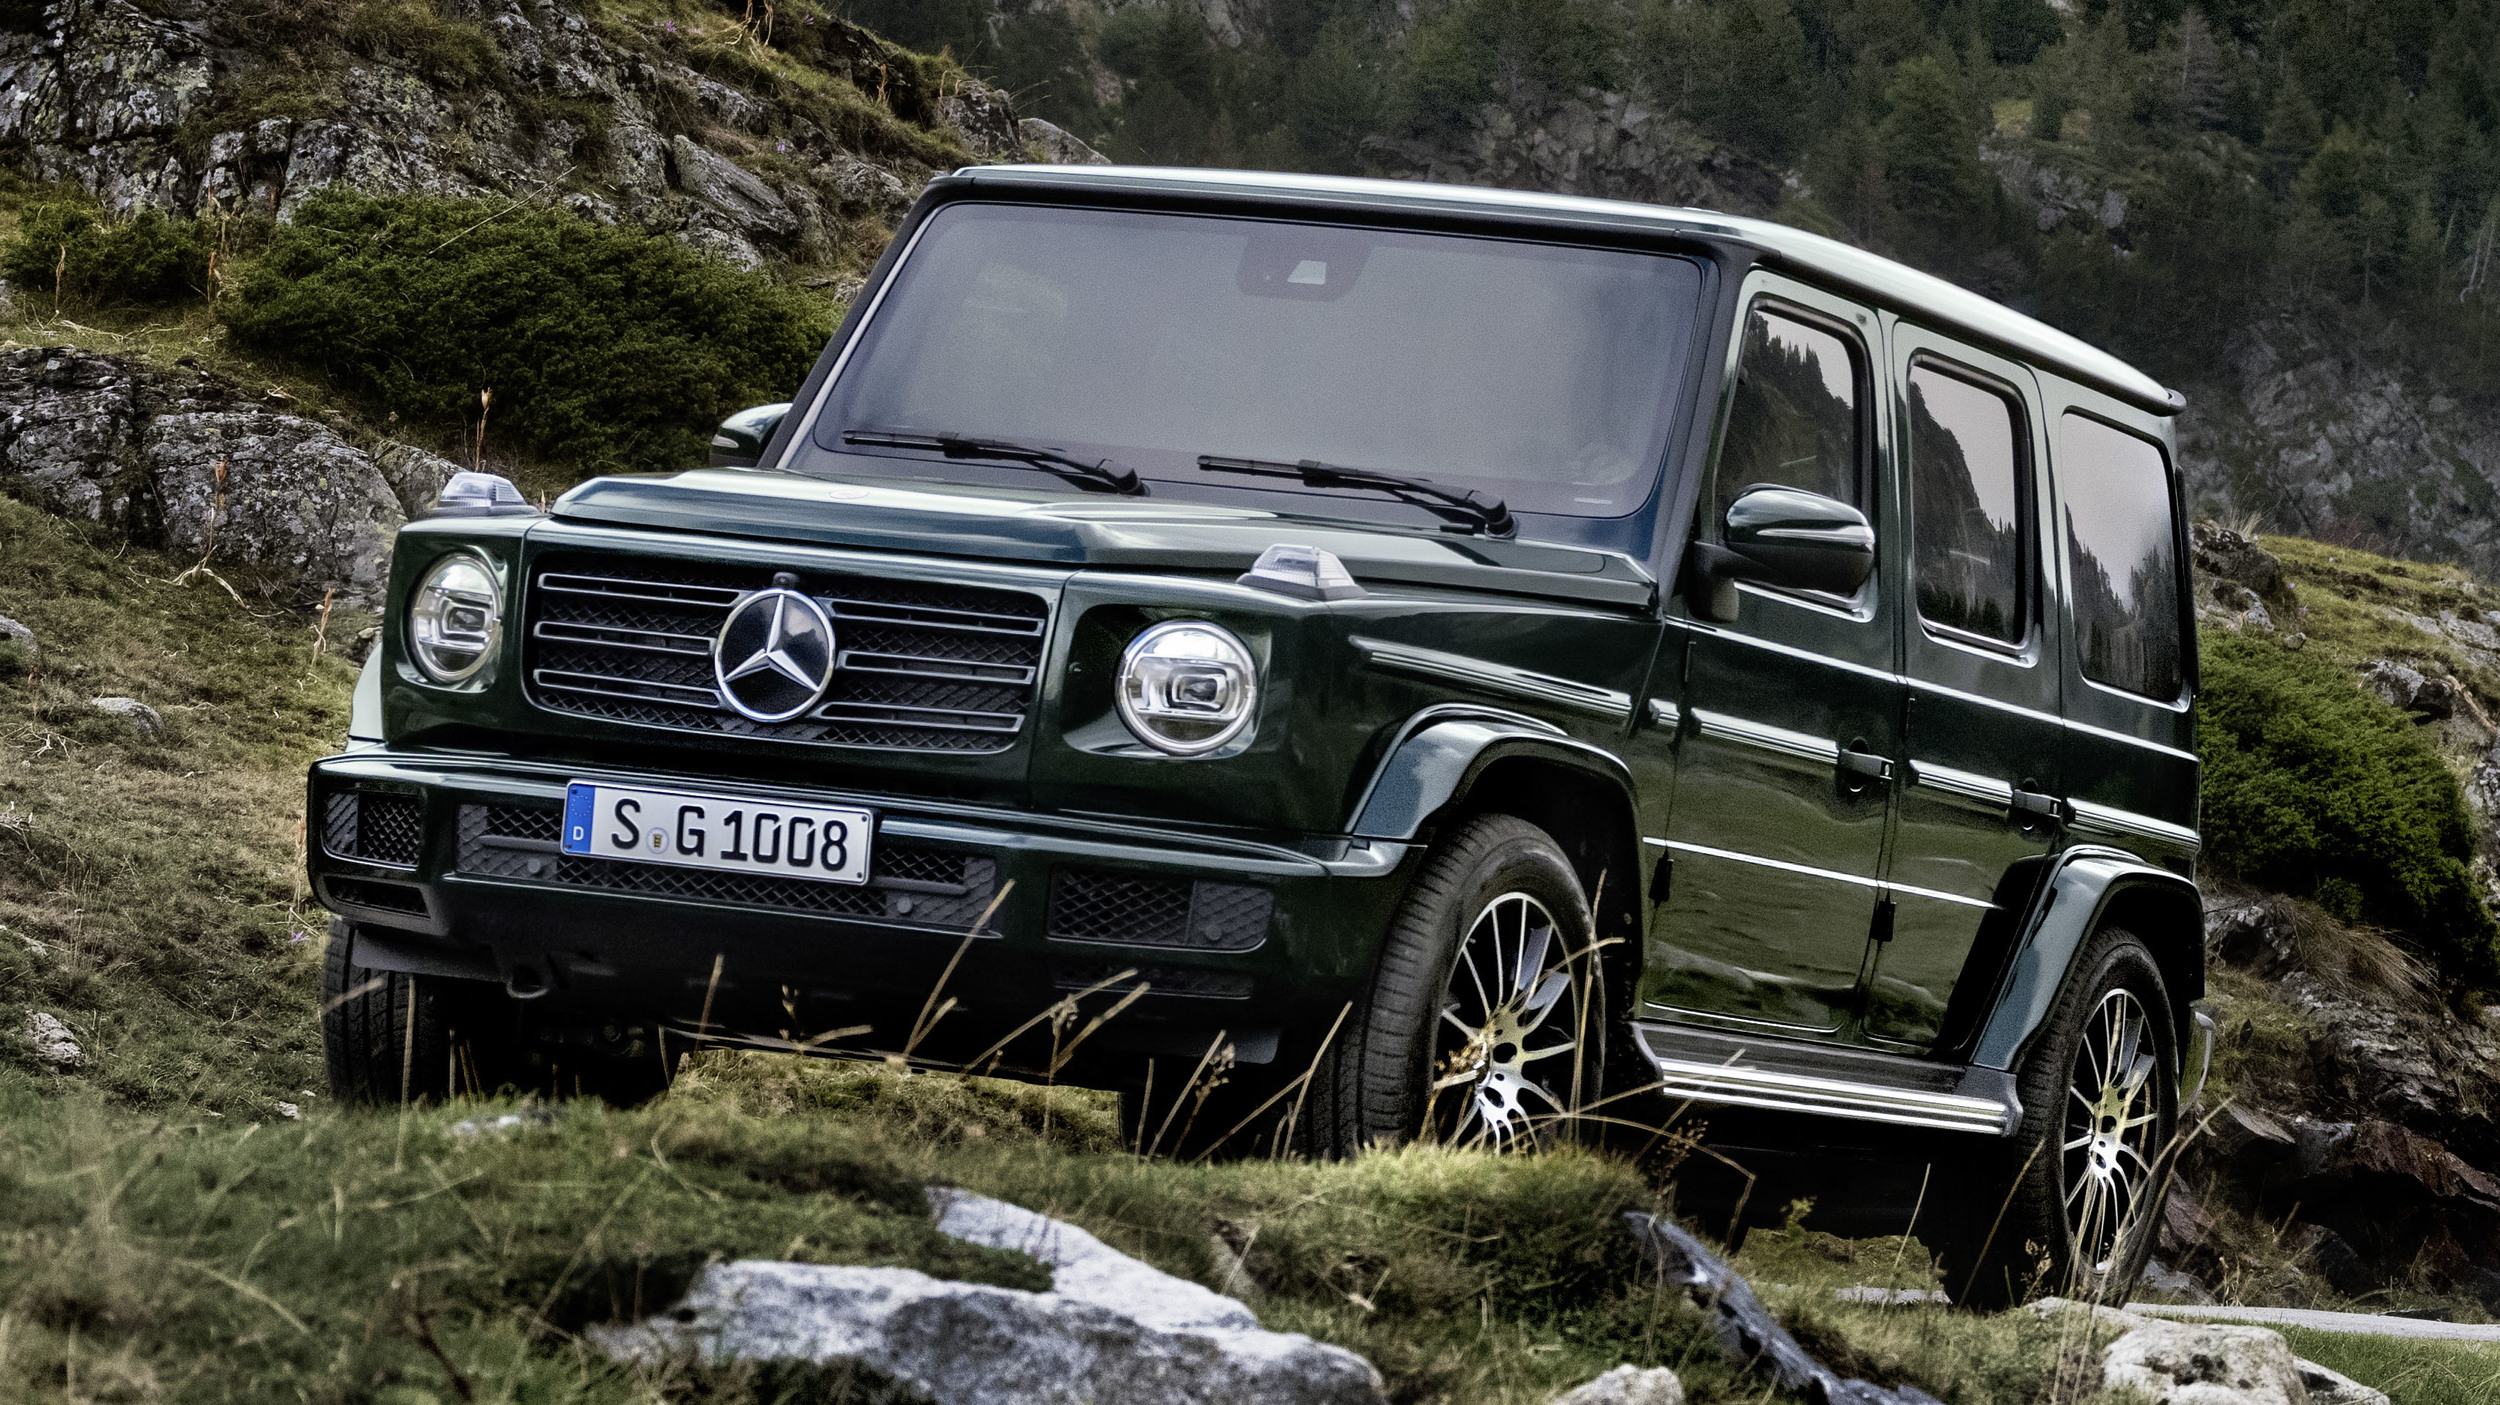 2017 - [Mercedes-Benz] Classe G II - Page 7 17c922-03-1